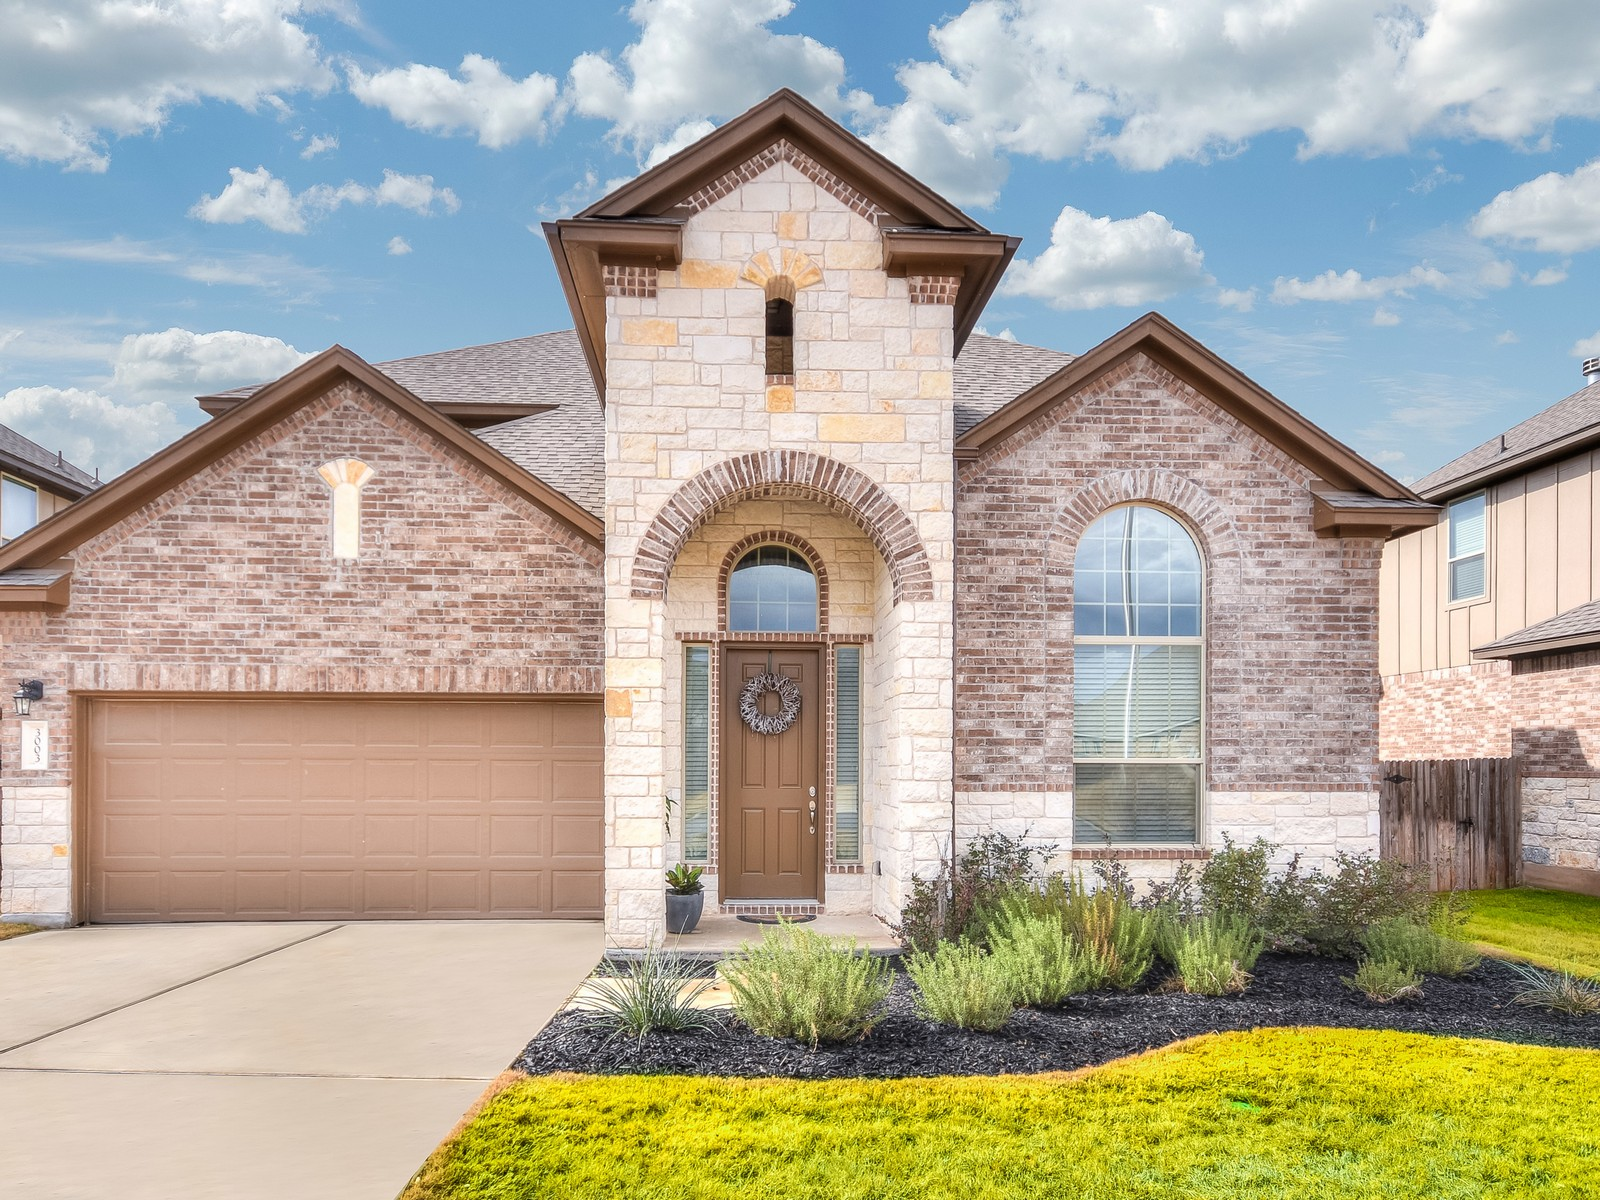 Single Family Home for Sale at Meticulous Home Backing to Greenbelt 3003 Tempe Dr Leander, Texas 78641 United States